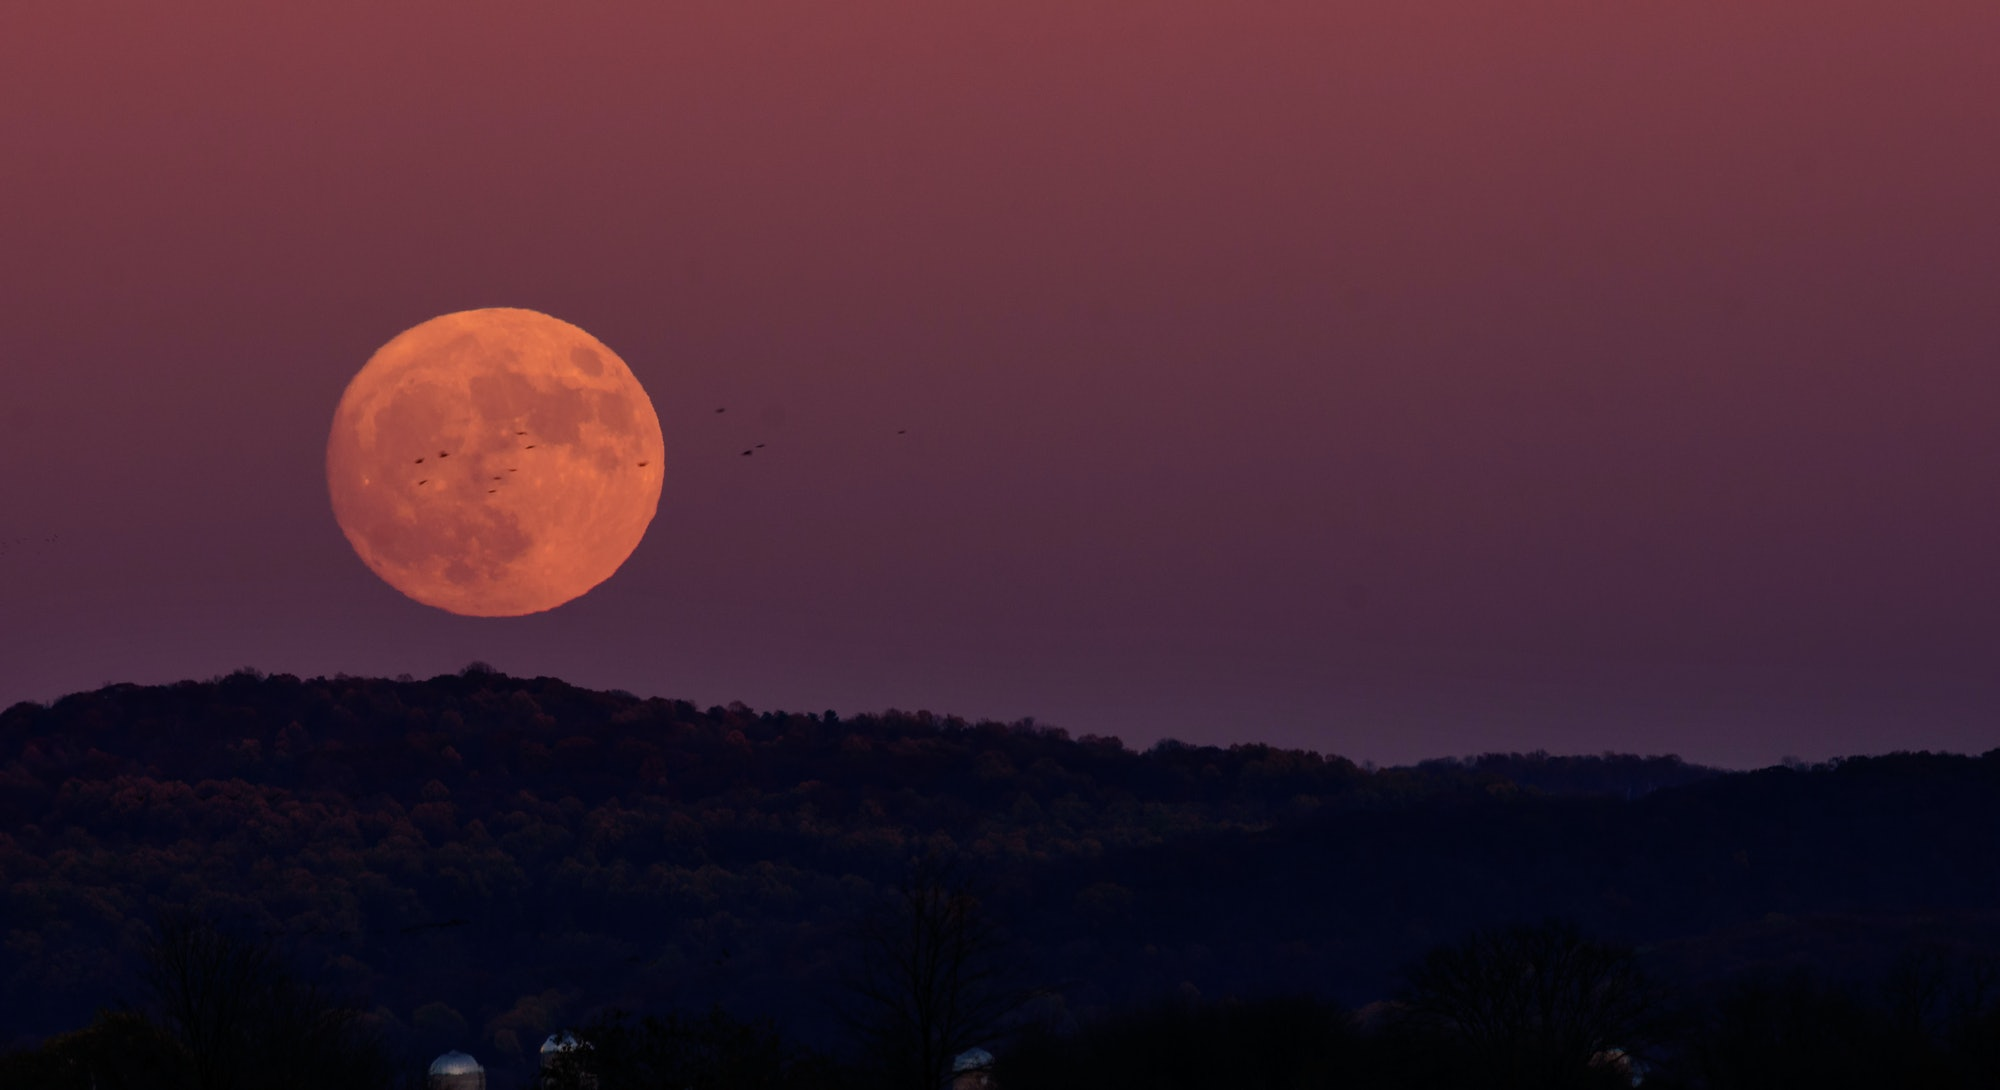 A supermoon happens when the full moon coincides with the moon's closest approach to Earth in its or...